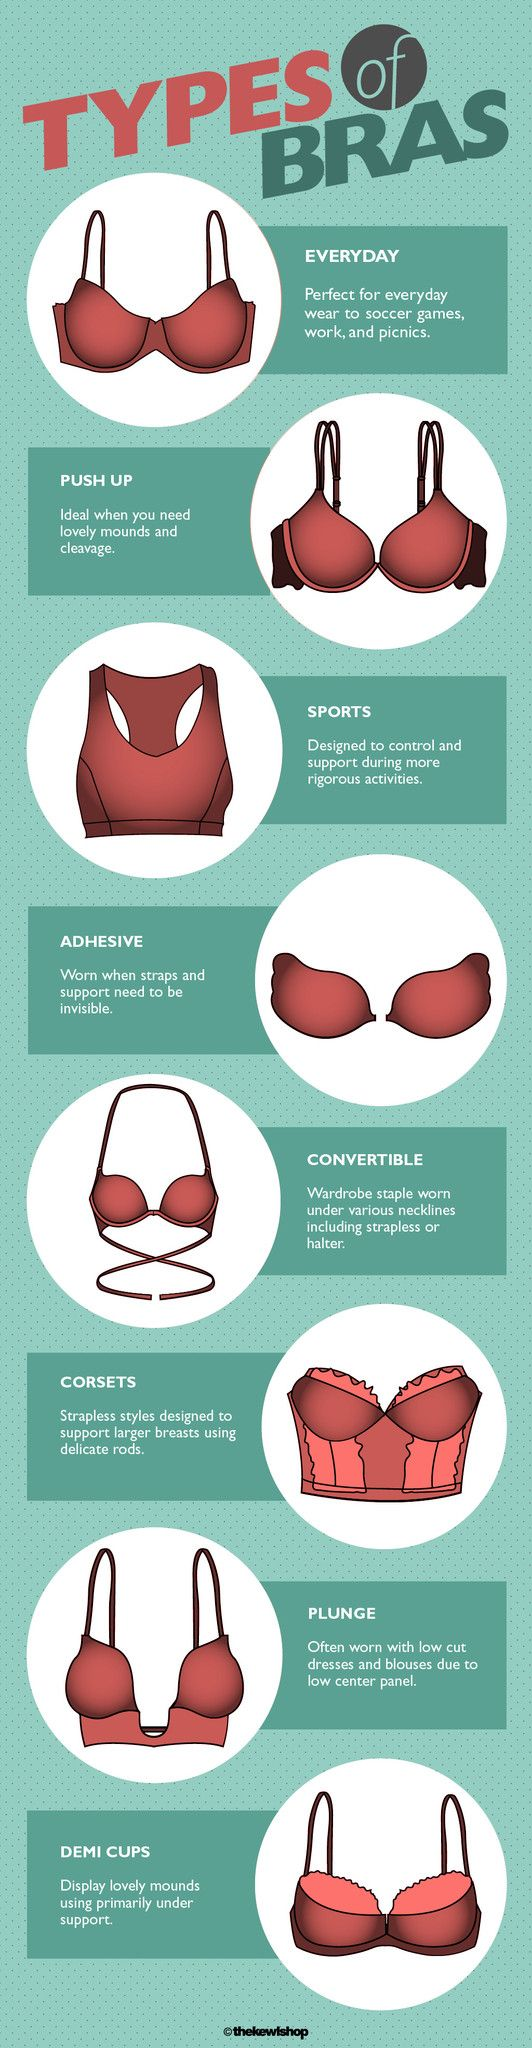 The best solution for finding the right bra size and style is to build a complete bra collection. Expensive? Perhaps. Worth the investment? Absolutely. When you slowly begin to build a complete bra collection you begin to see your clothing differently and with more confidence. The right bra has the ability to make or break any outfit and a well supported bustline is not just part of achieving celebrity like shape and style it is becoming a fashionista requirement.